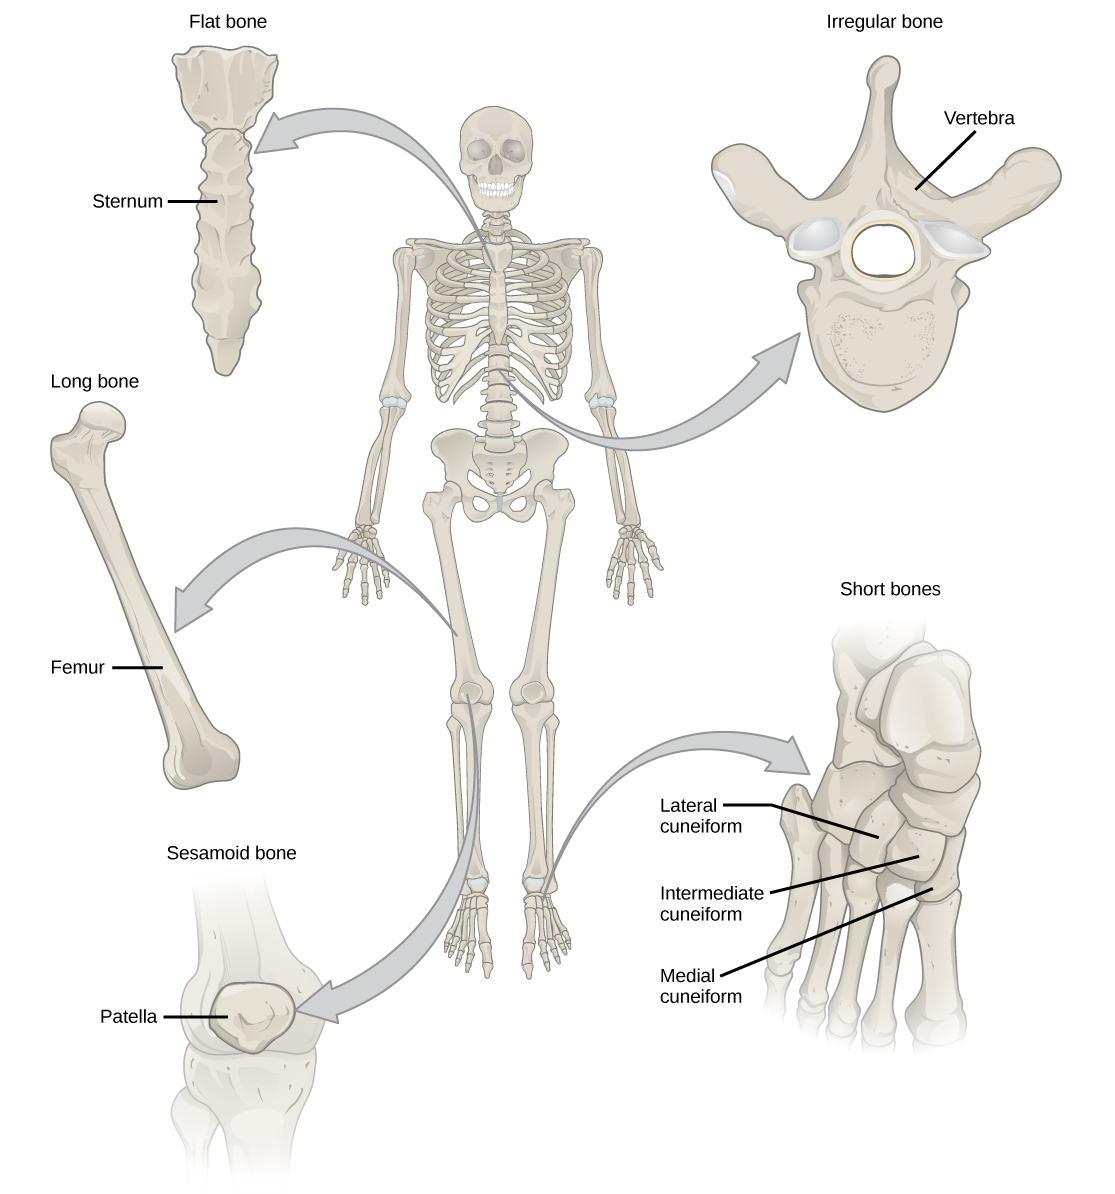 Illustration shows classification of different bone types. The sternum at the front, middle of the rib cage is a flat bone. The femur is a long bone. The patella is small and circular, and is called a sesamoid bone. The vertebrae are irregular bones, with holes in their centers and the bones of the foot are short bones, called lateral cuneiform, intermediate cuneiform, and medial cuneiform.